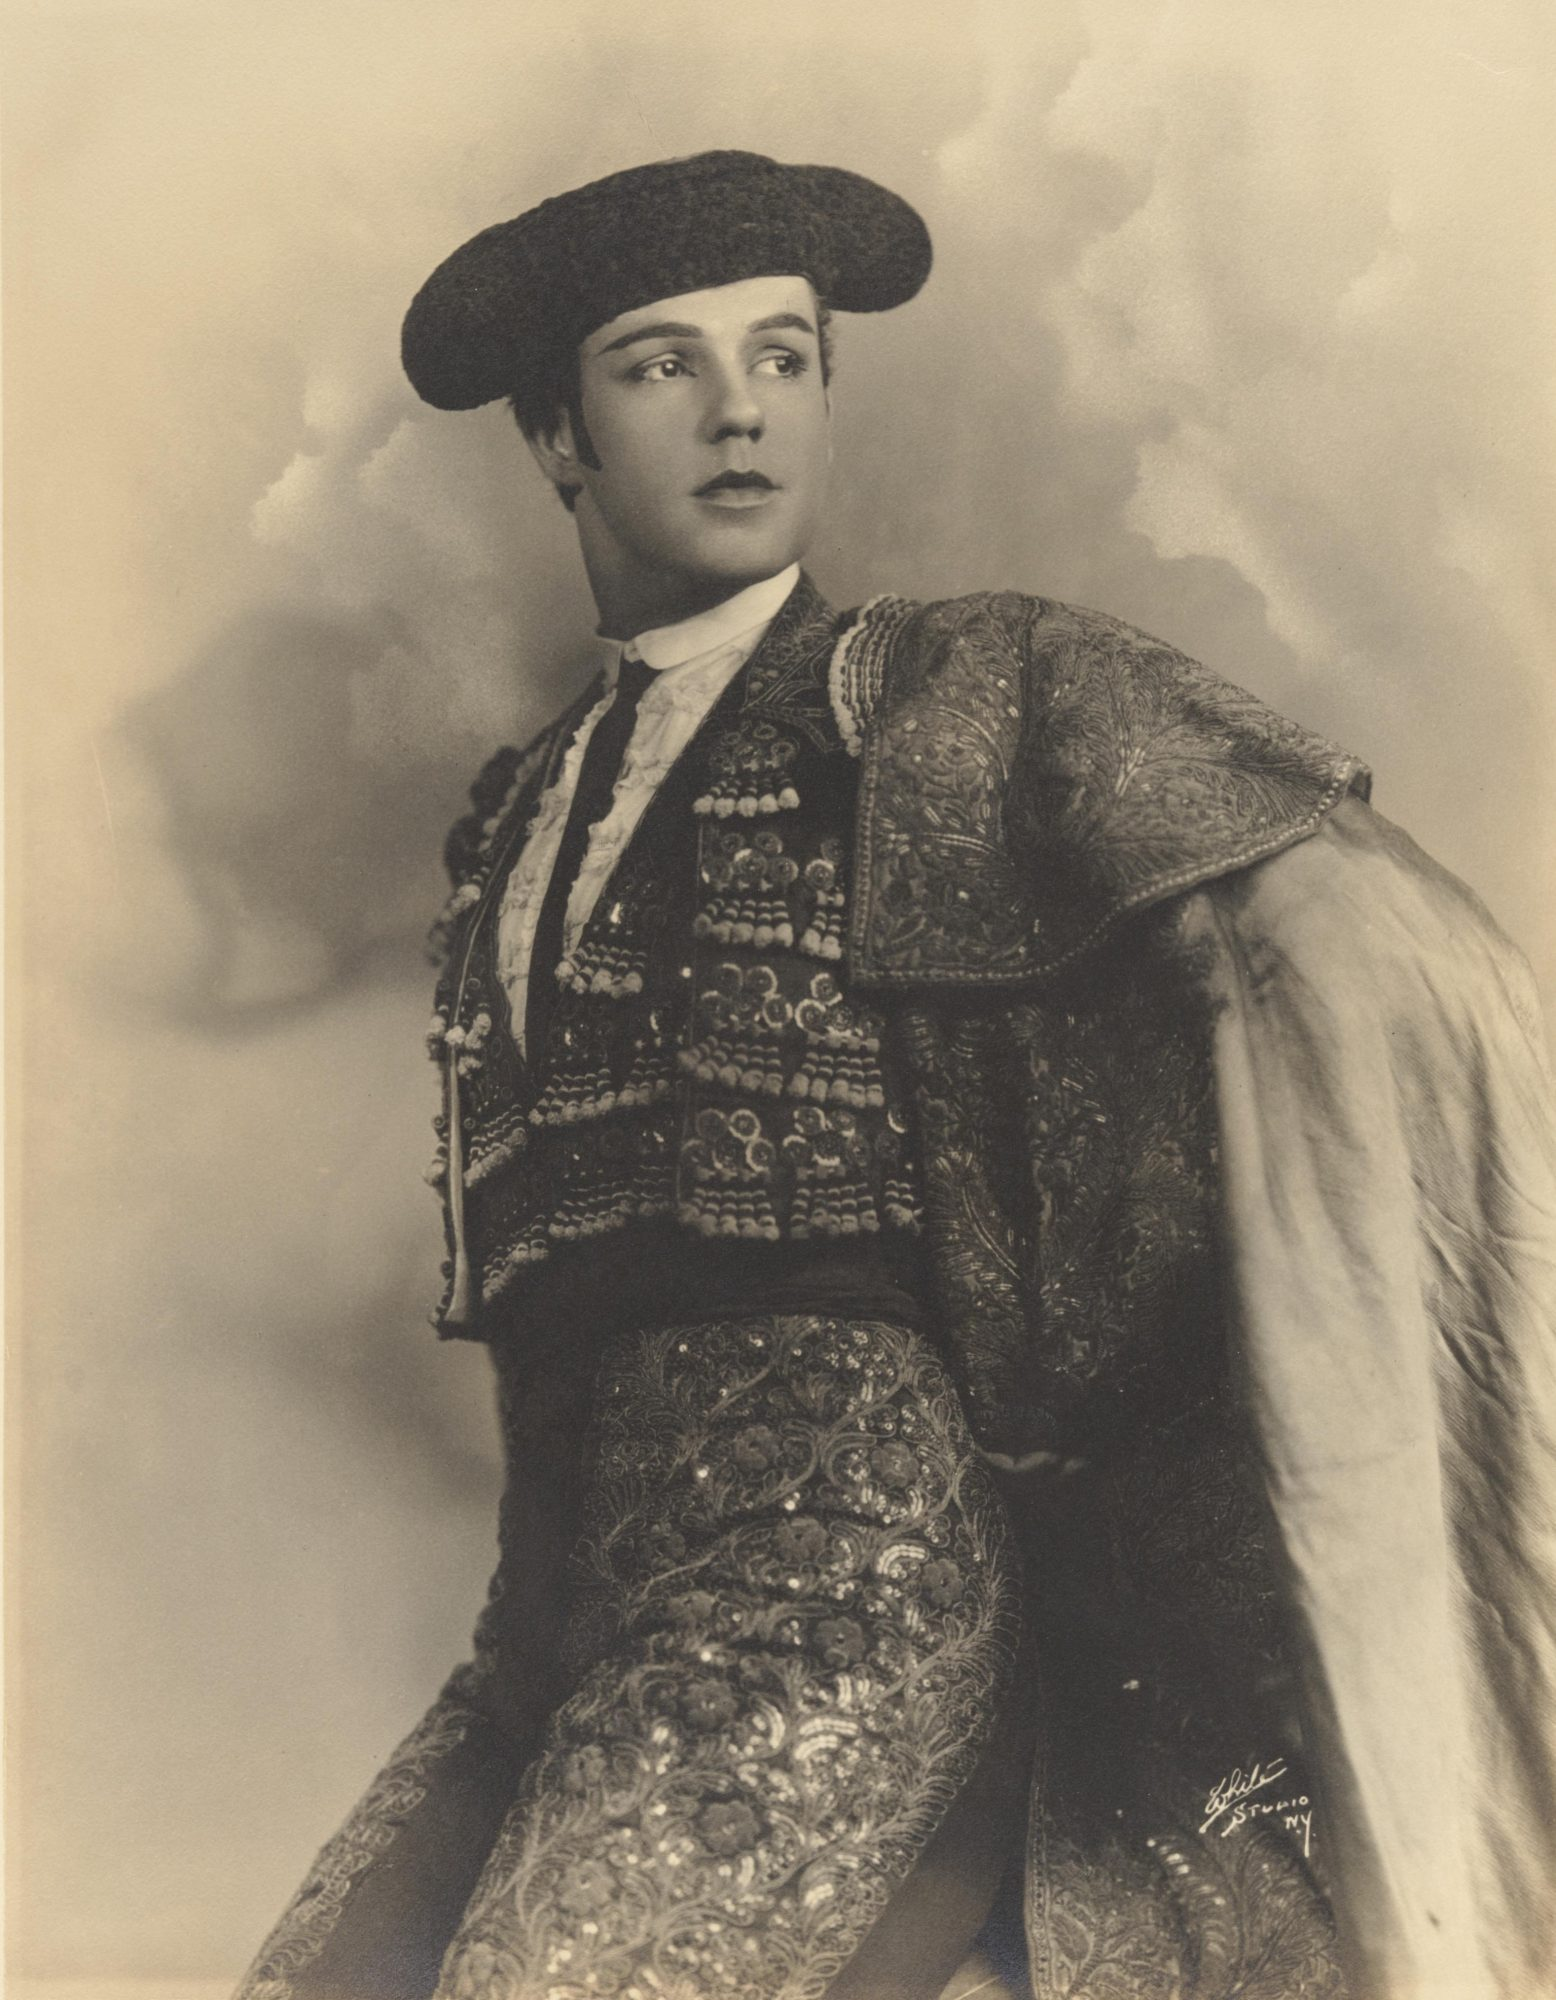 White Studios, Ted Shawn in Costume for Cuadro Flamenco, ca. 1923. Courtesy of Jacob's Pillow Dance Festival Archives.